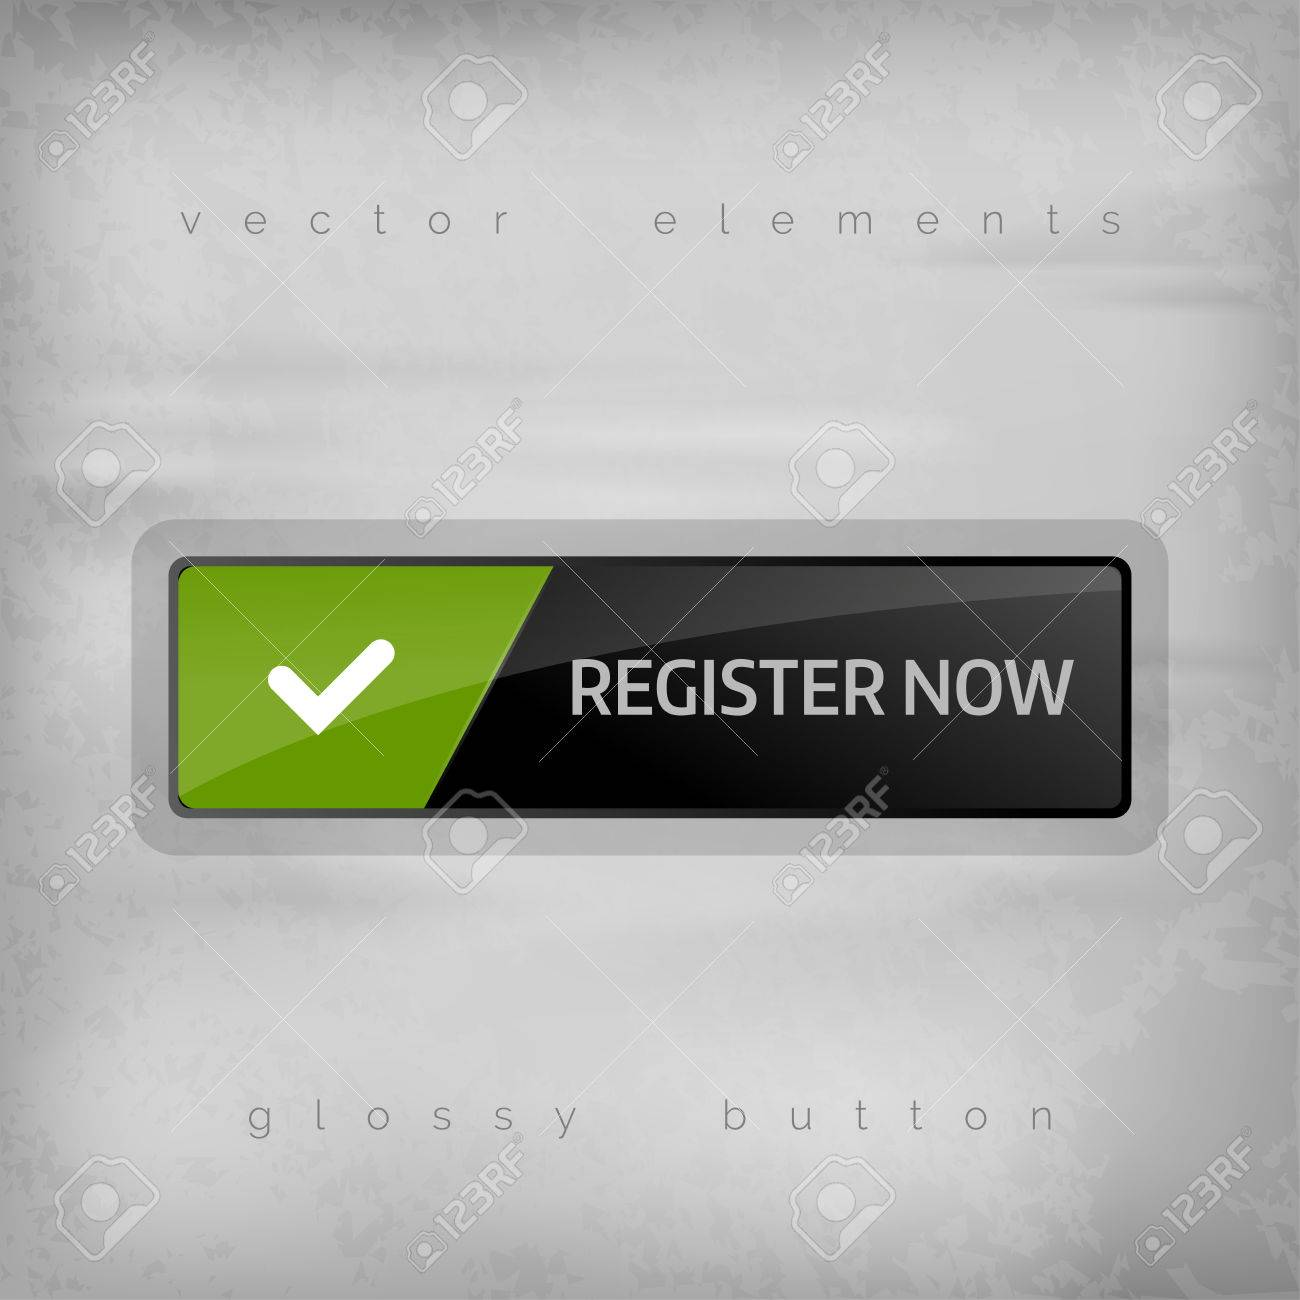 Simple button REGISTER NOW with color space for icons - 39499015